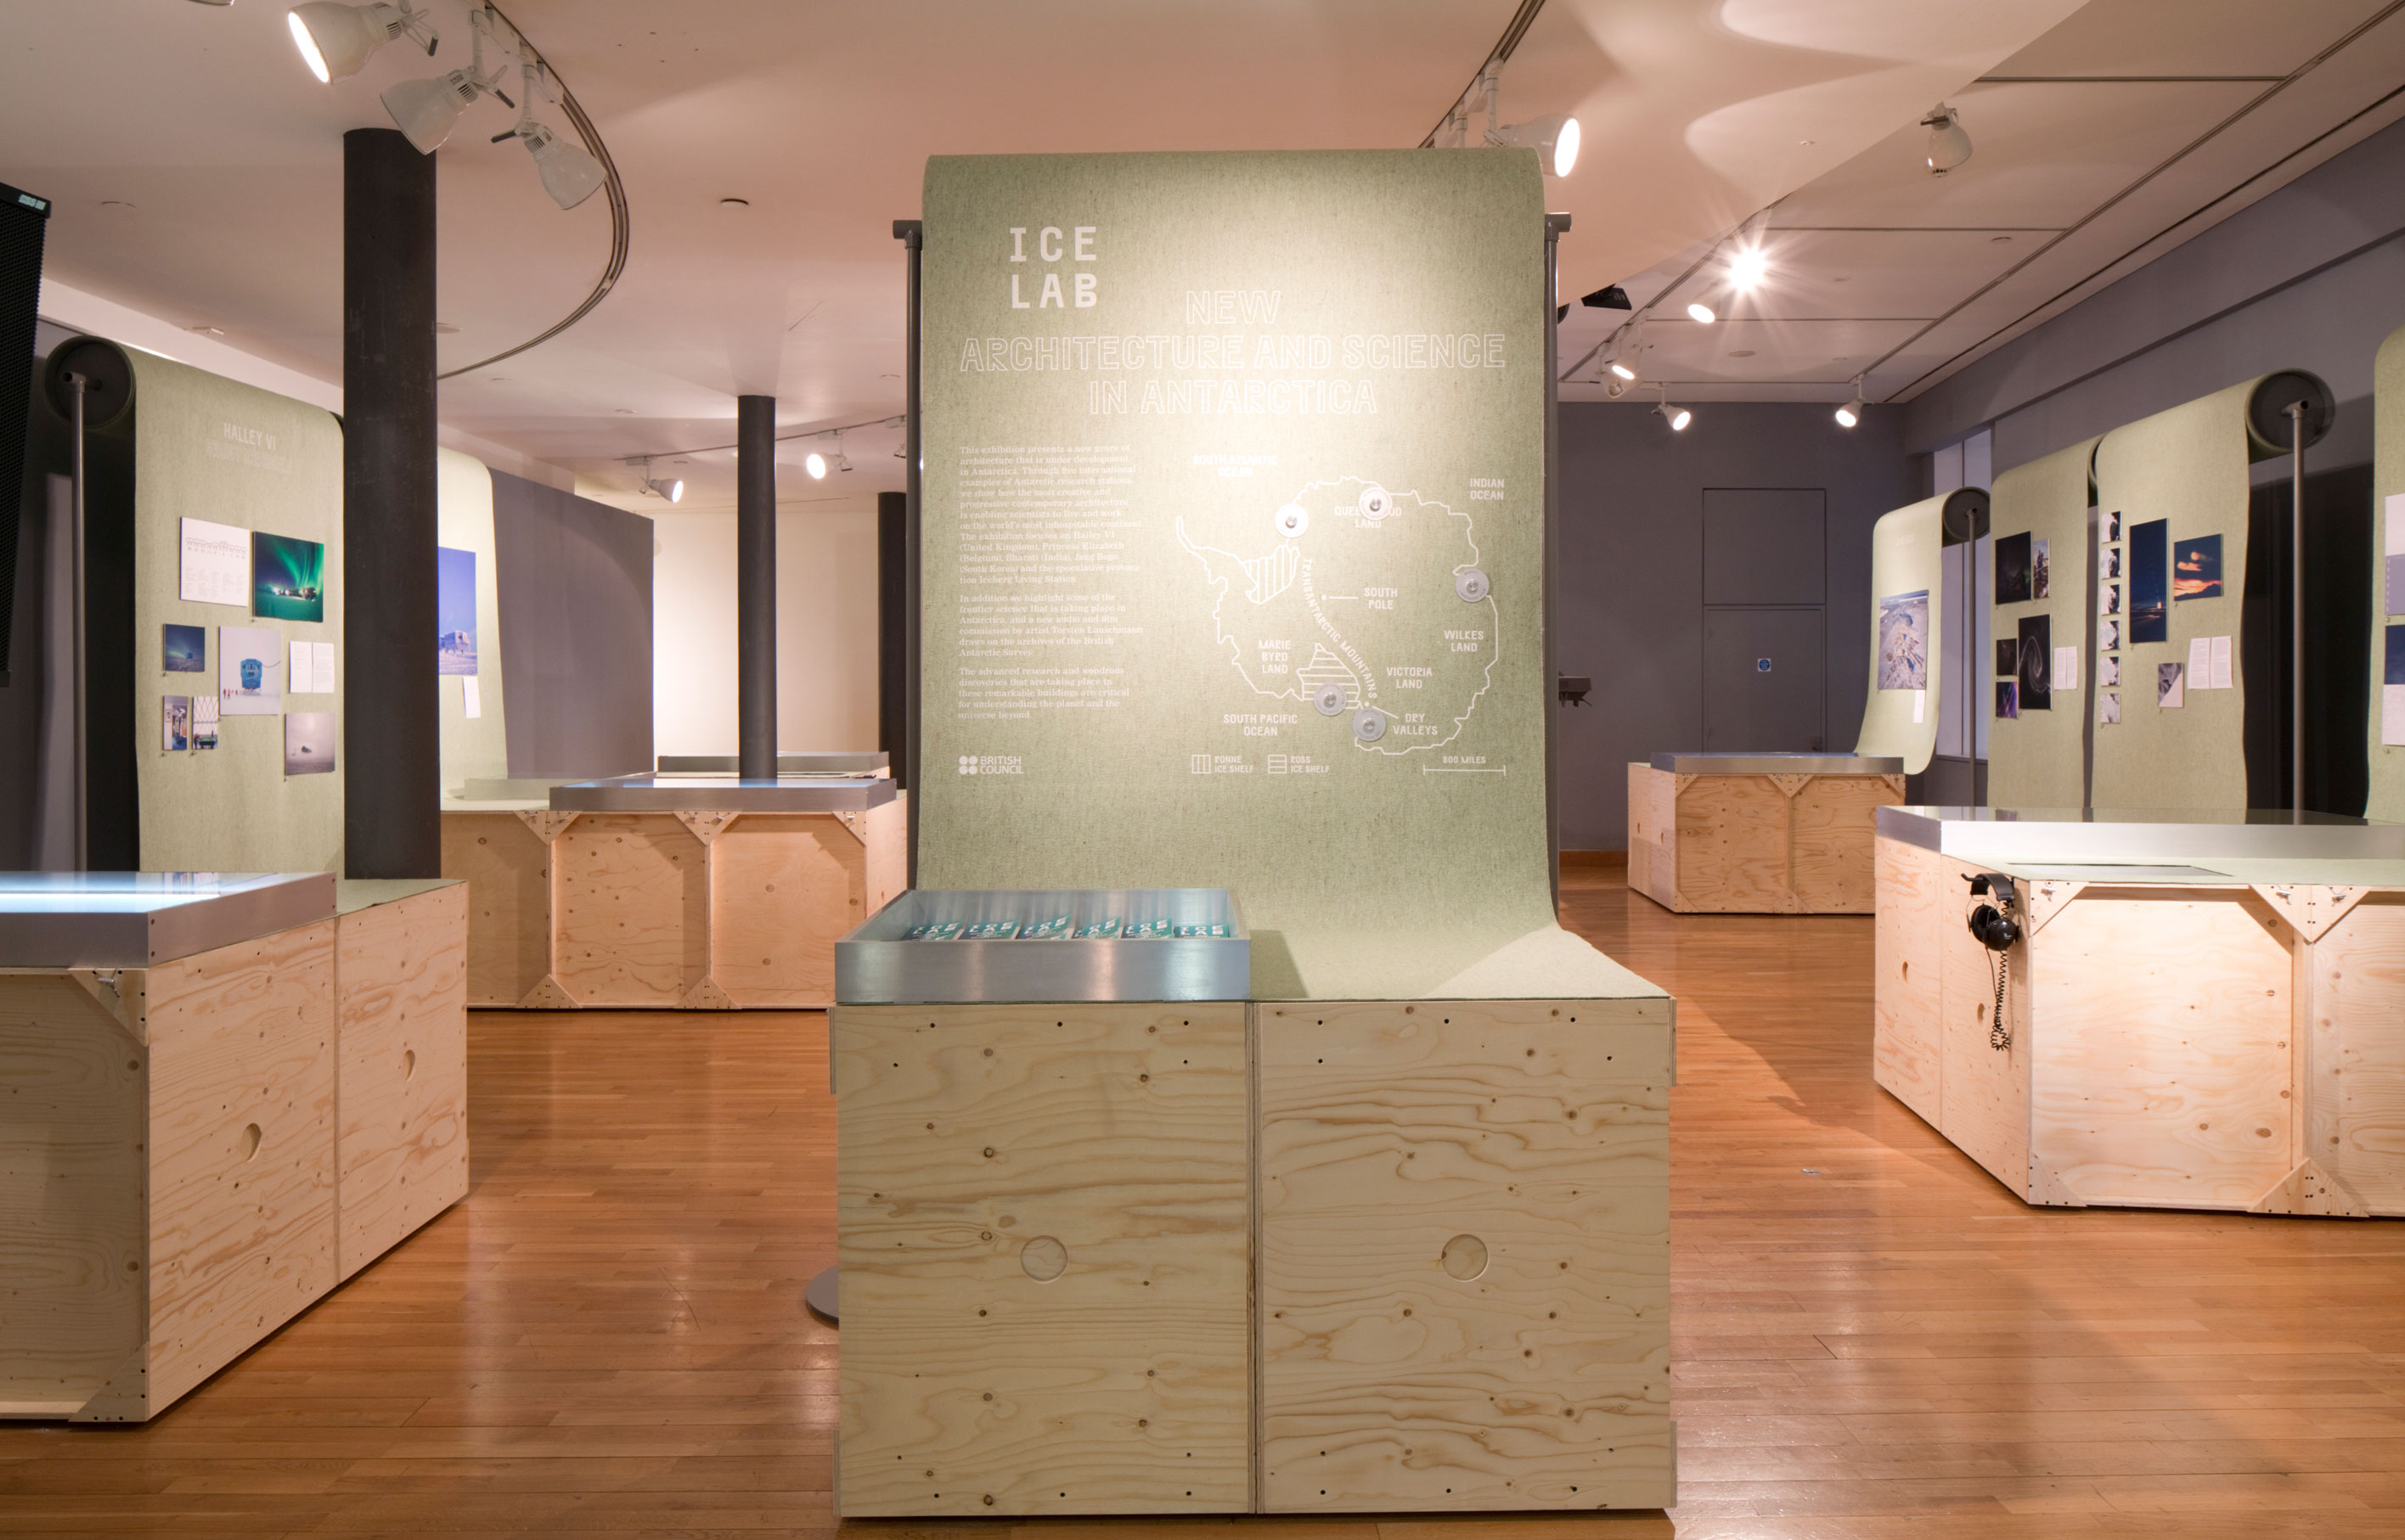 Aldworth James & Bond | Ice Lab Exhibition - joinery and graphics by Aldworth James & Bond